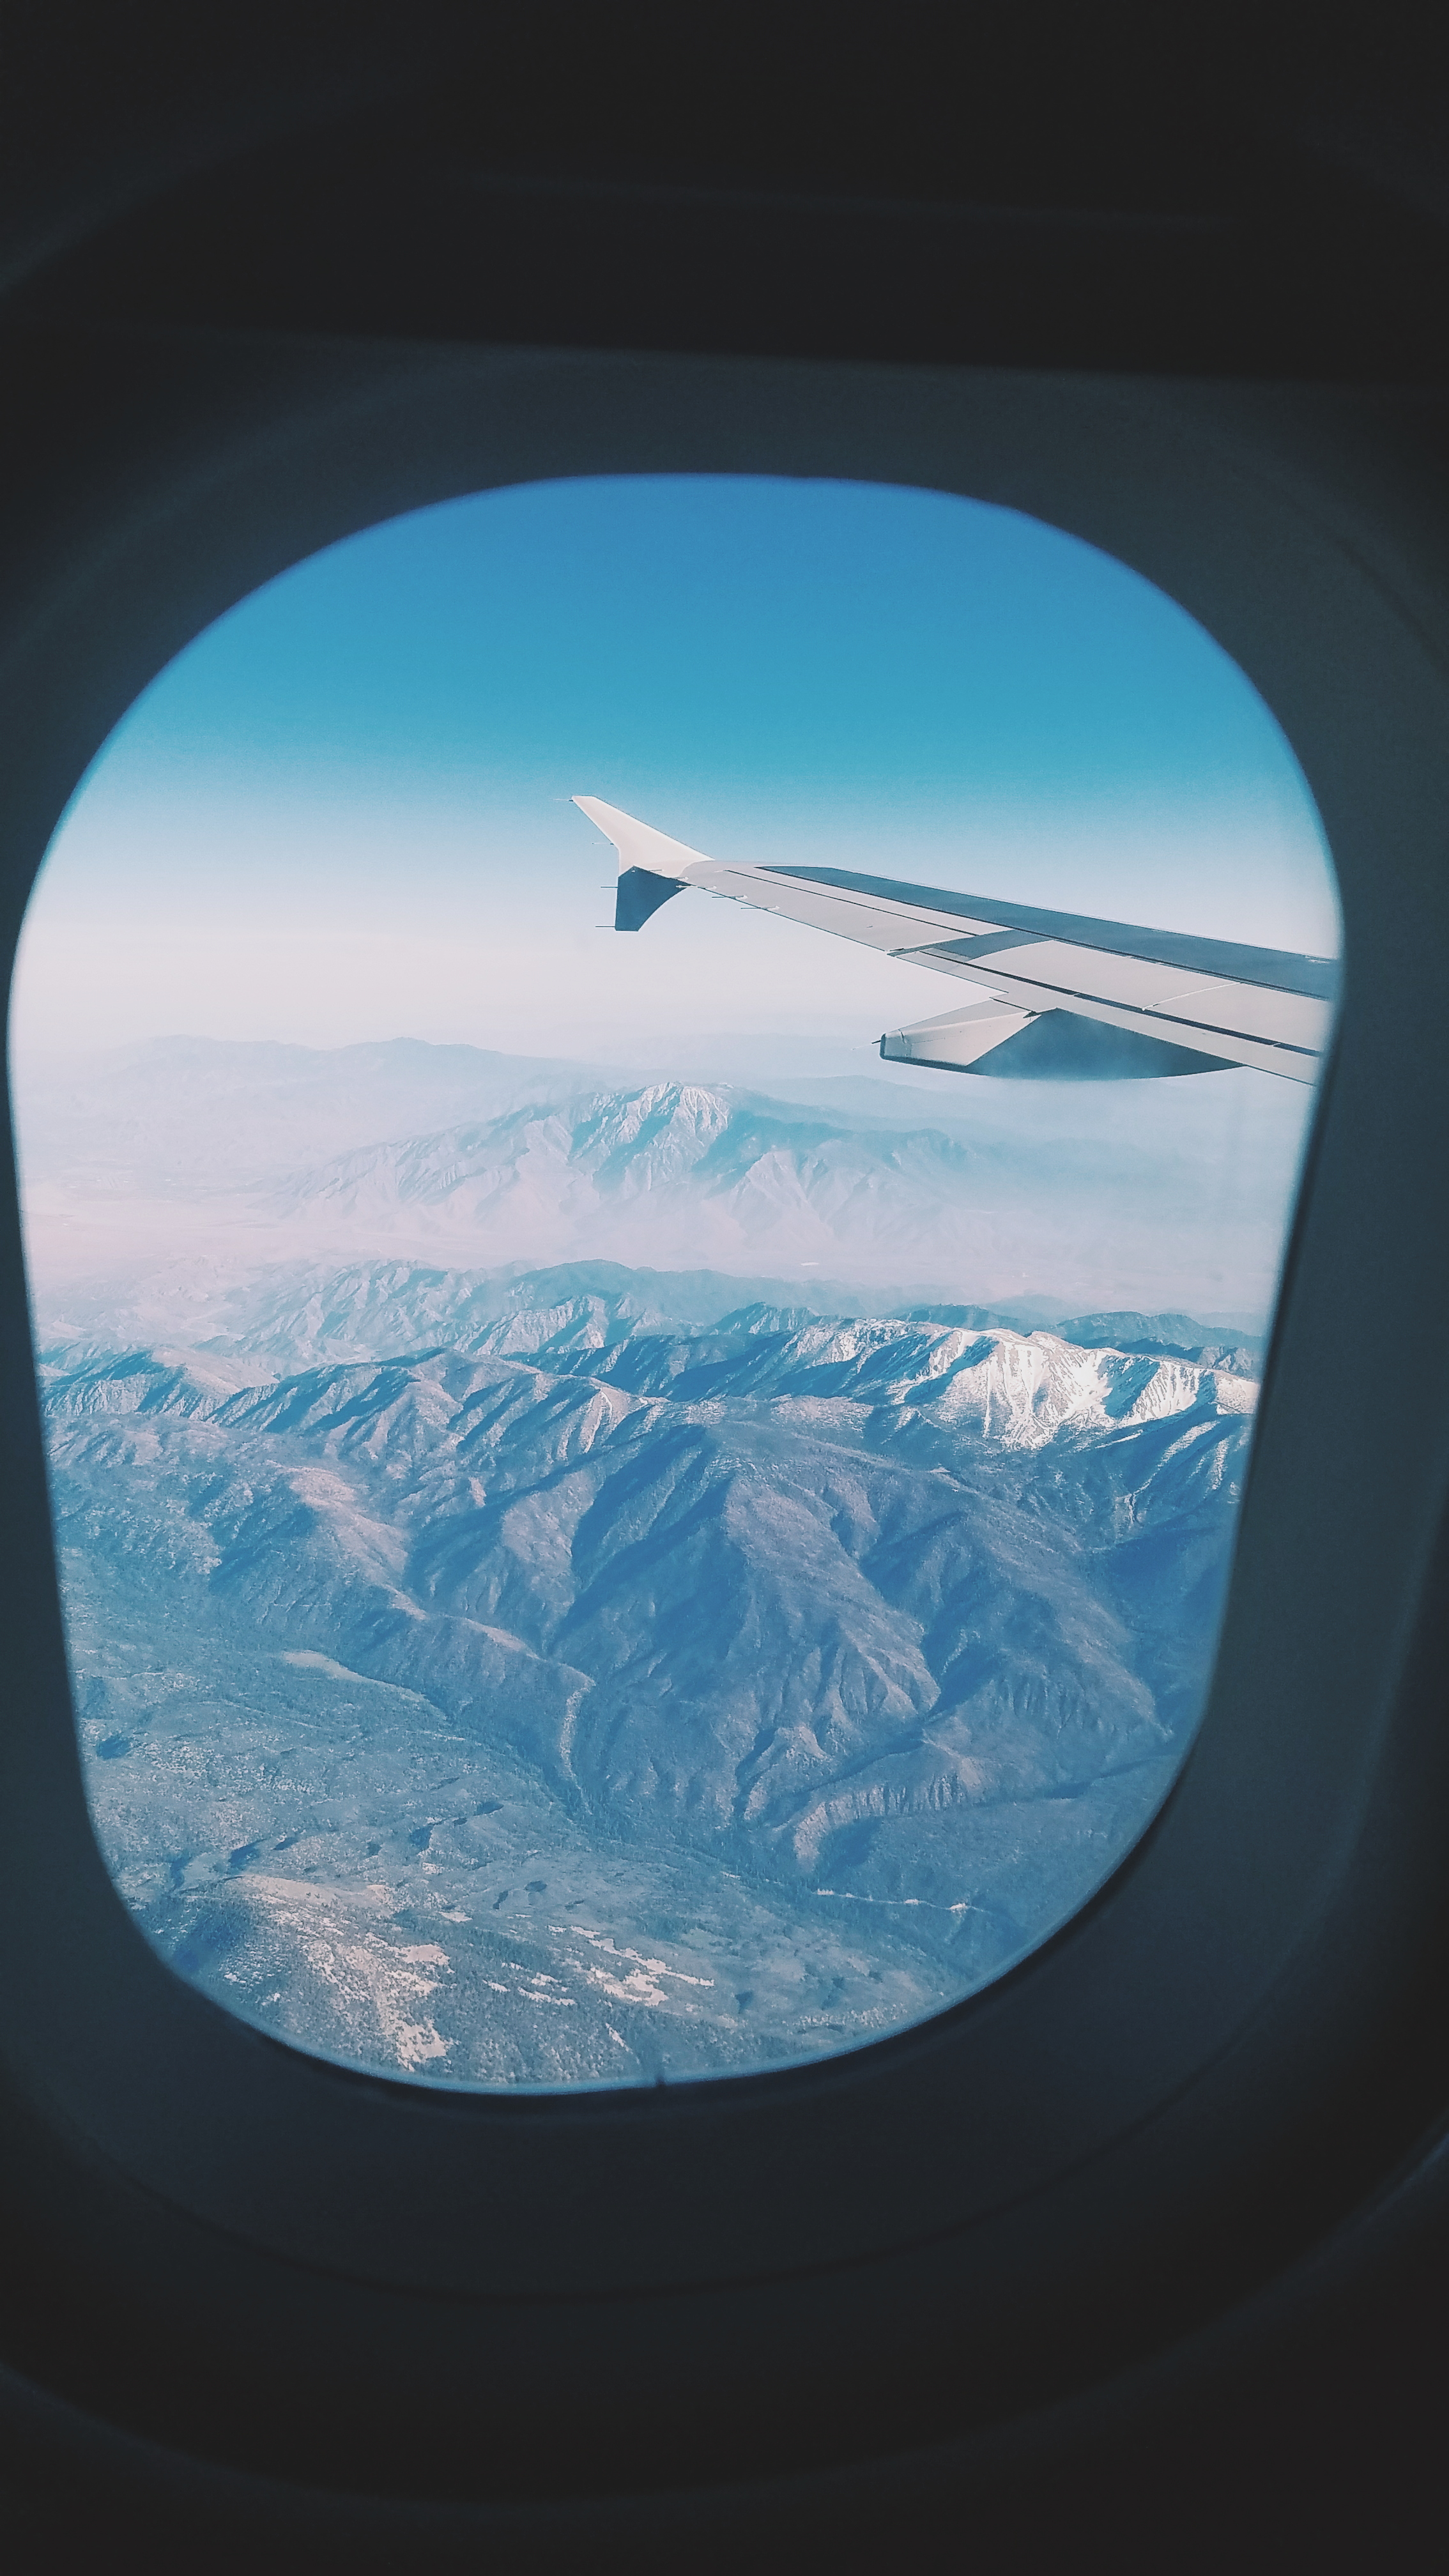 Somewhere over the Rockies - see what I mean by the breath-taking views?